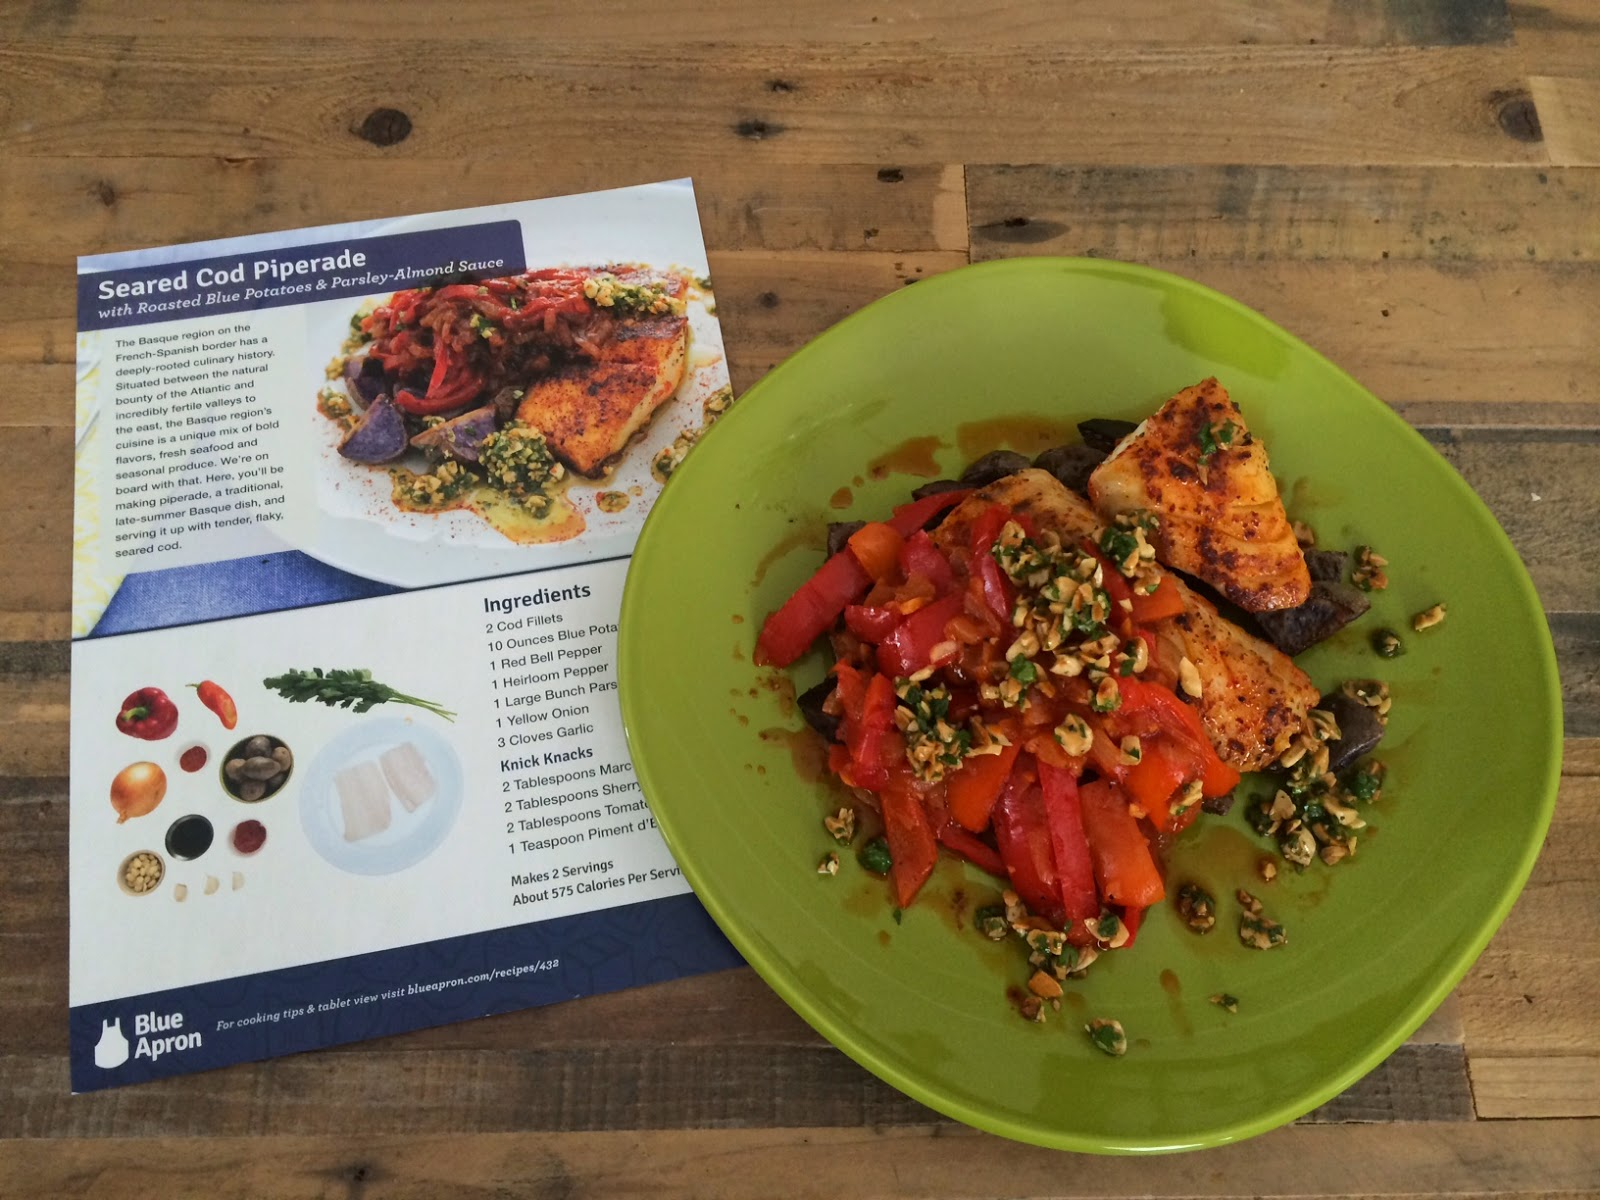 Blue apron history - Seared Cod Piperade With Roasted Blue Potatoes And Parsley Almond Sauce